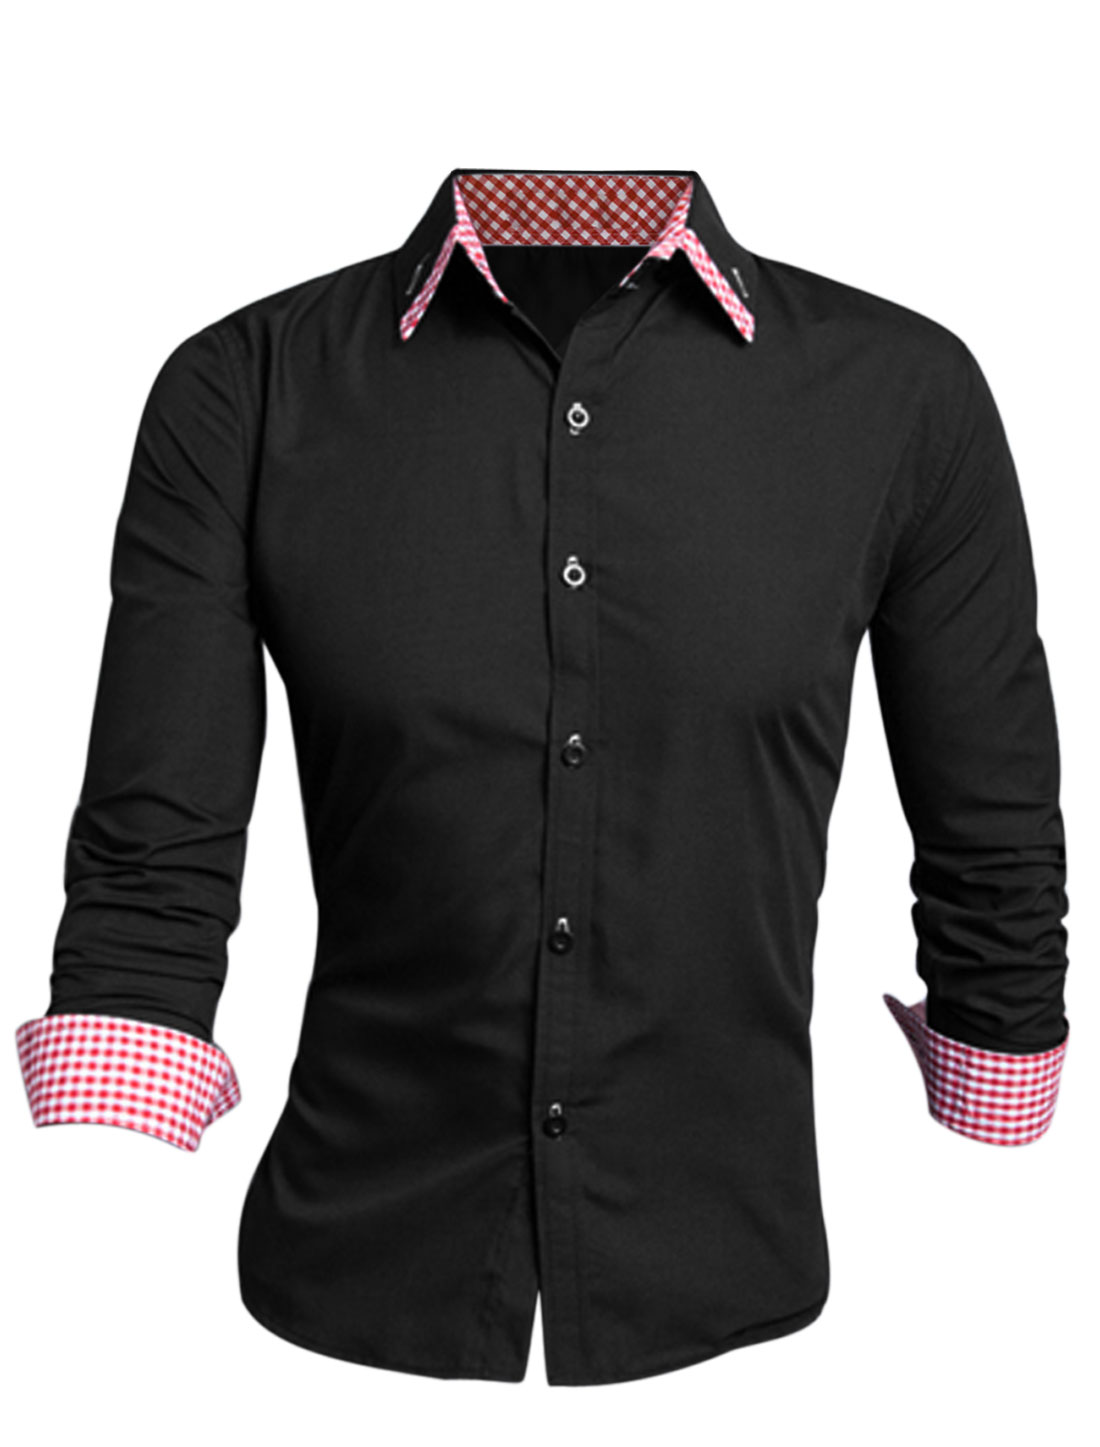 Men Point Collar Long Sleeve Button Cuffs Casual Shirt Black Red M